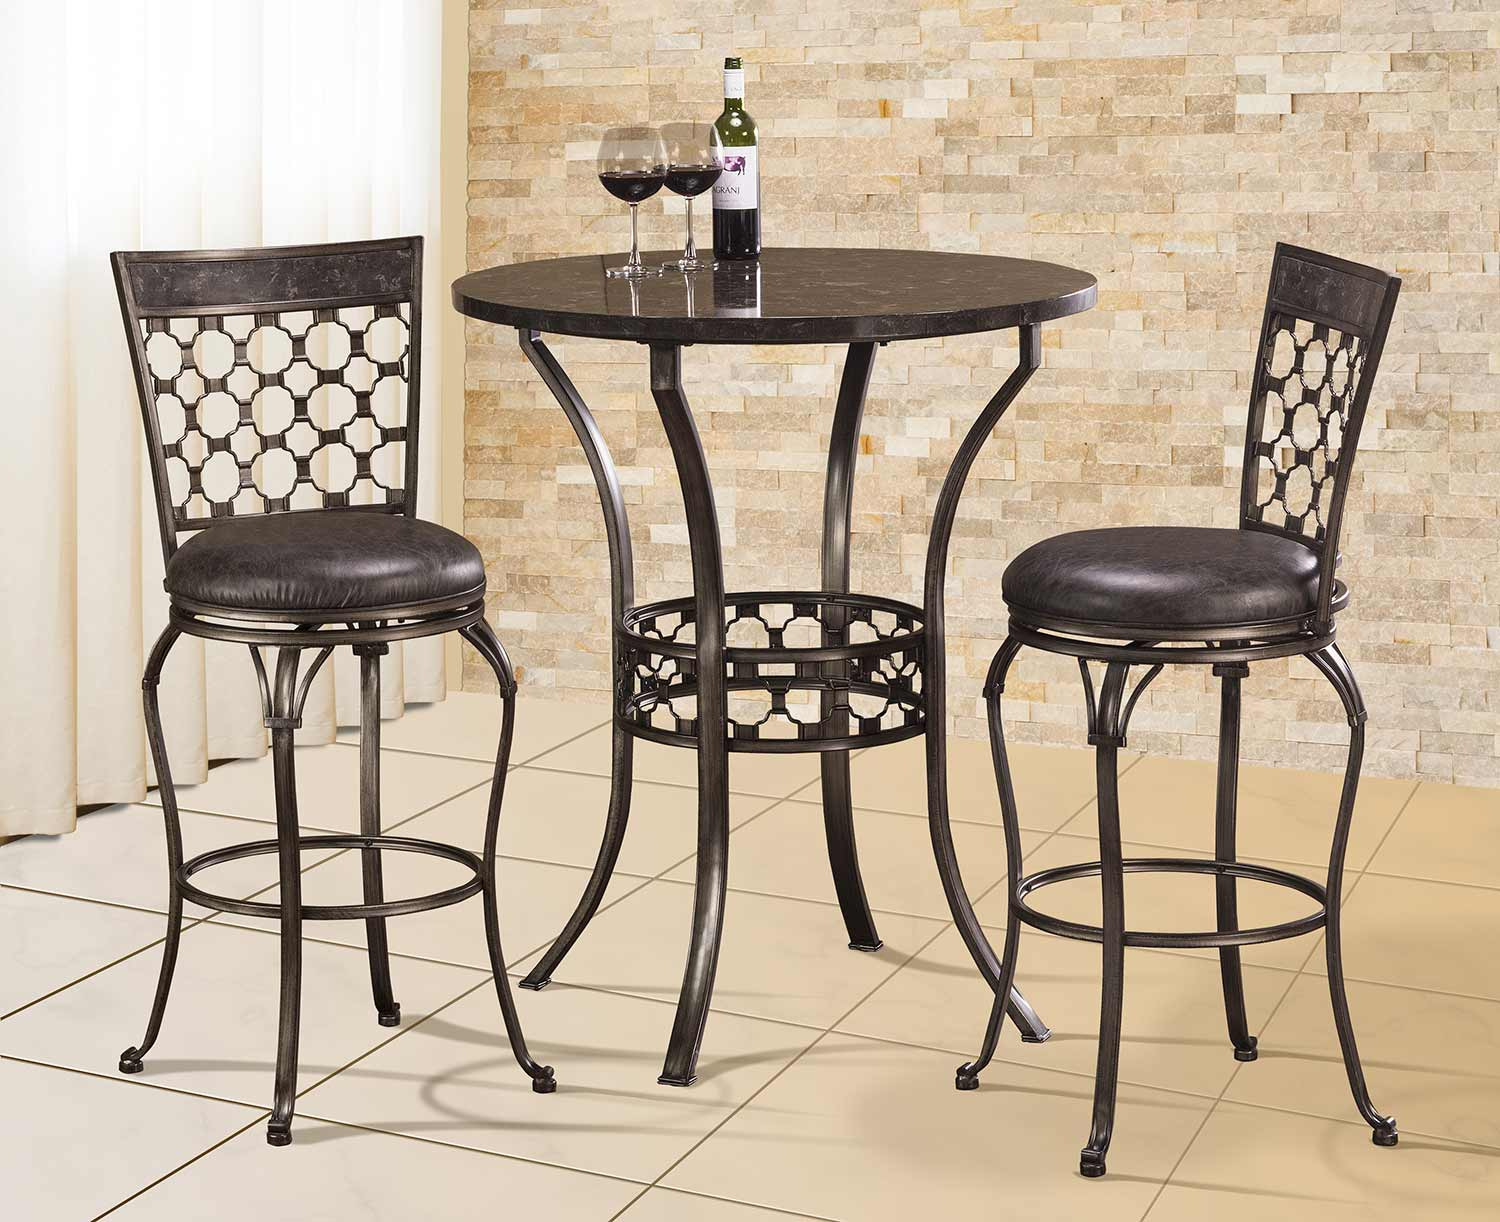 New! Antique Metal Dining Sets by Hillsdale Furniture